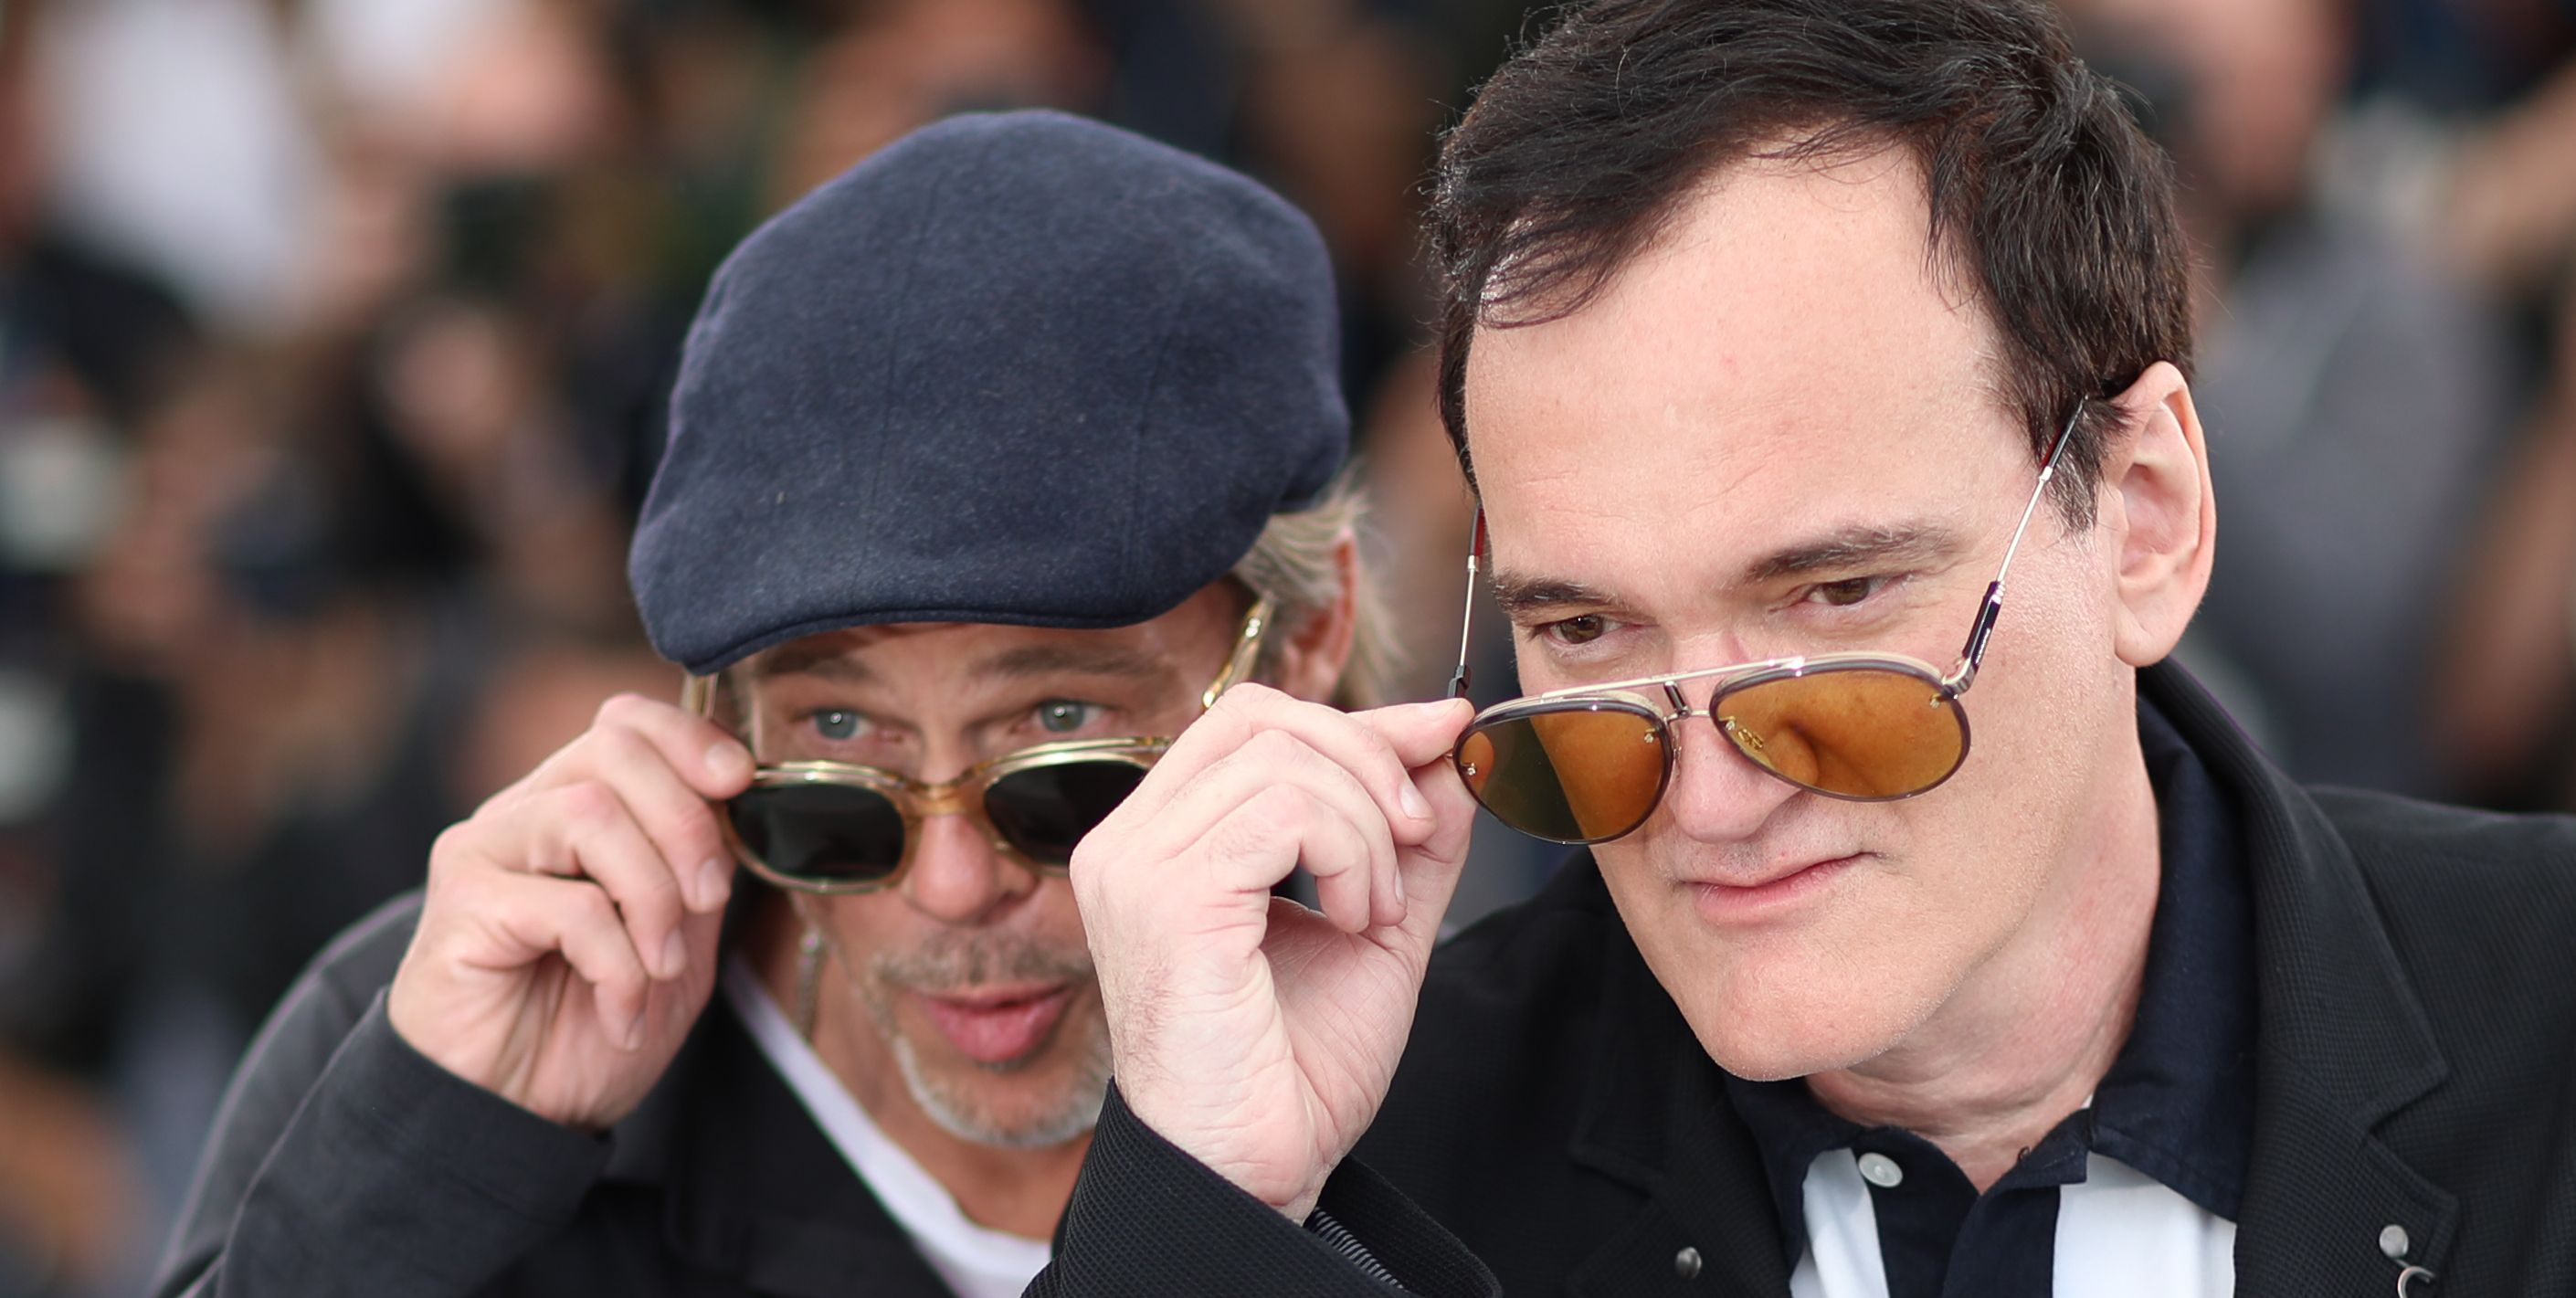 Leo, Brad And Quentin Just Schooled You On Perfect Sunglasses